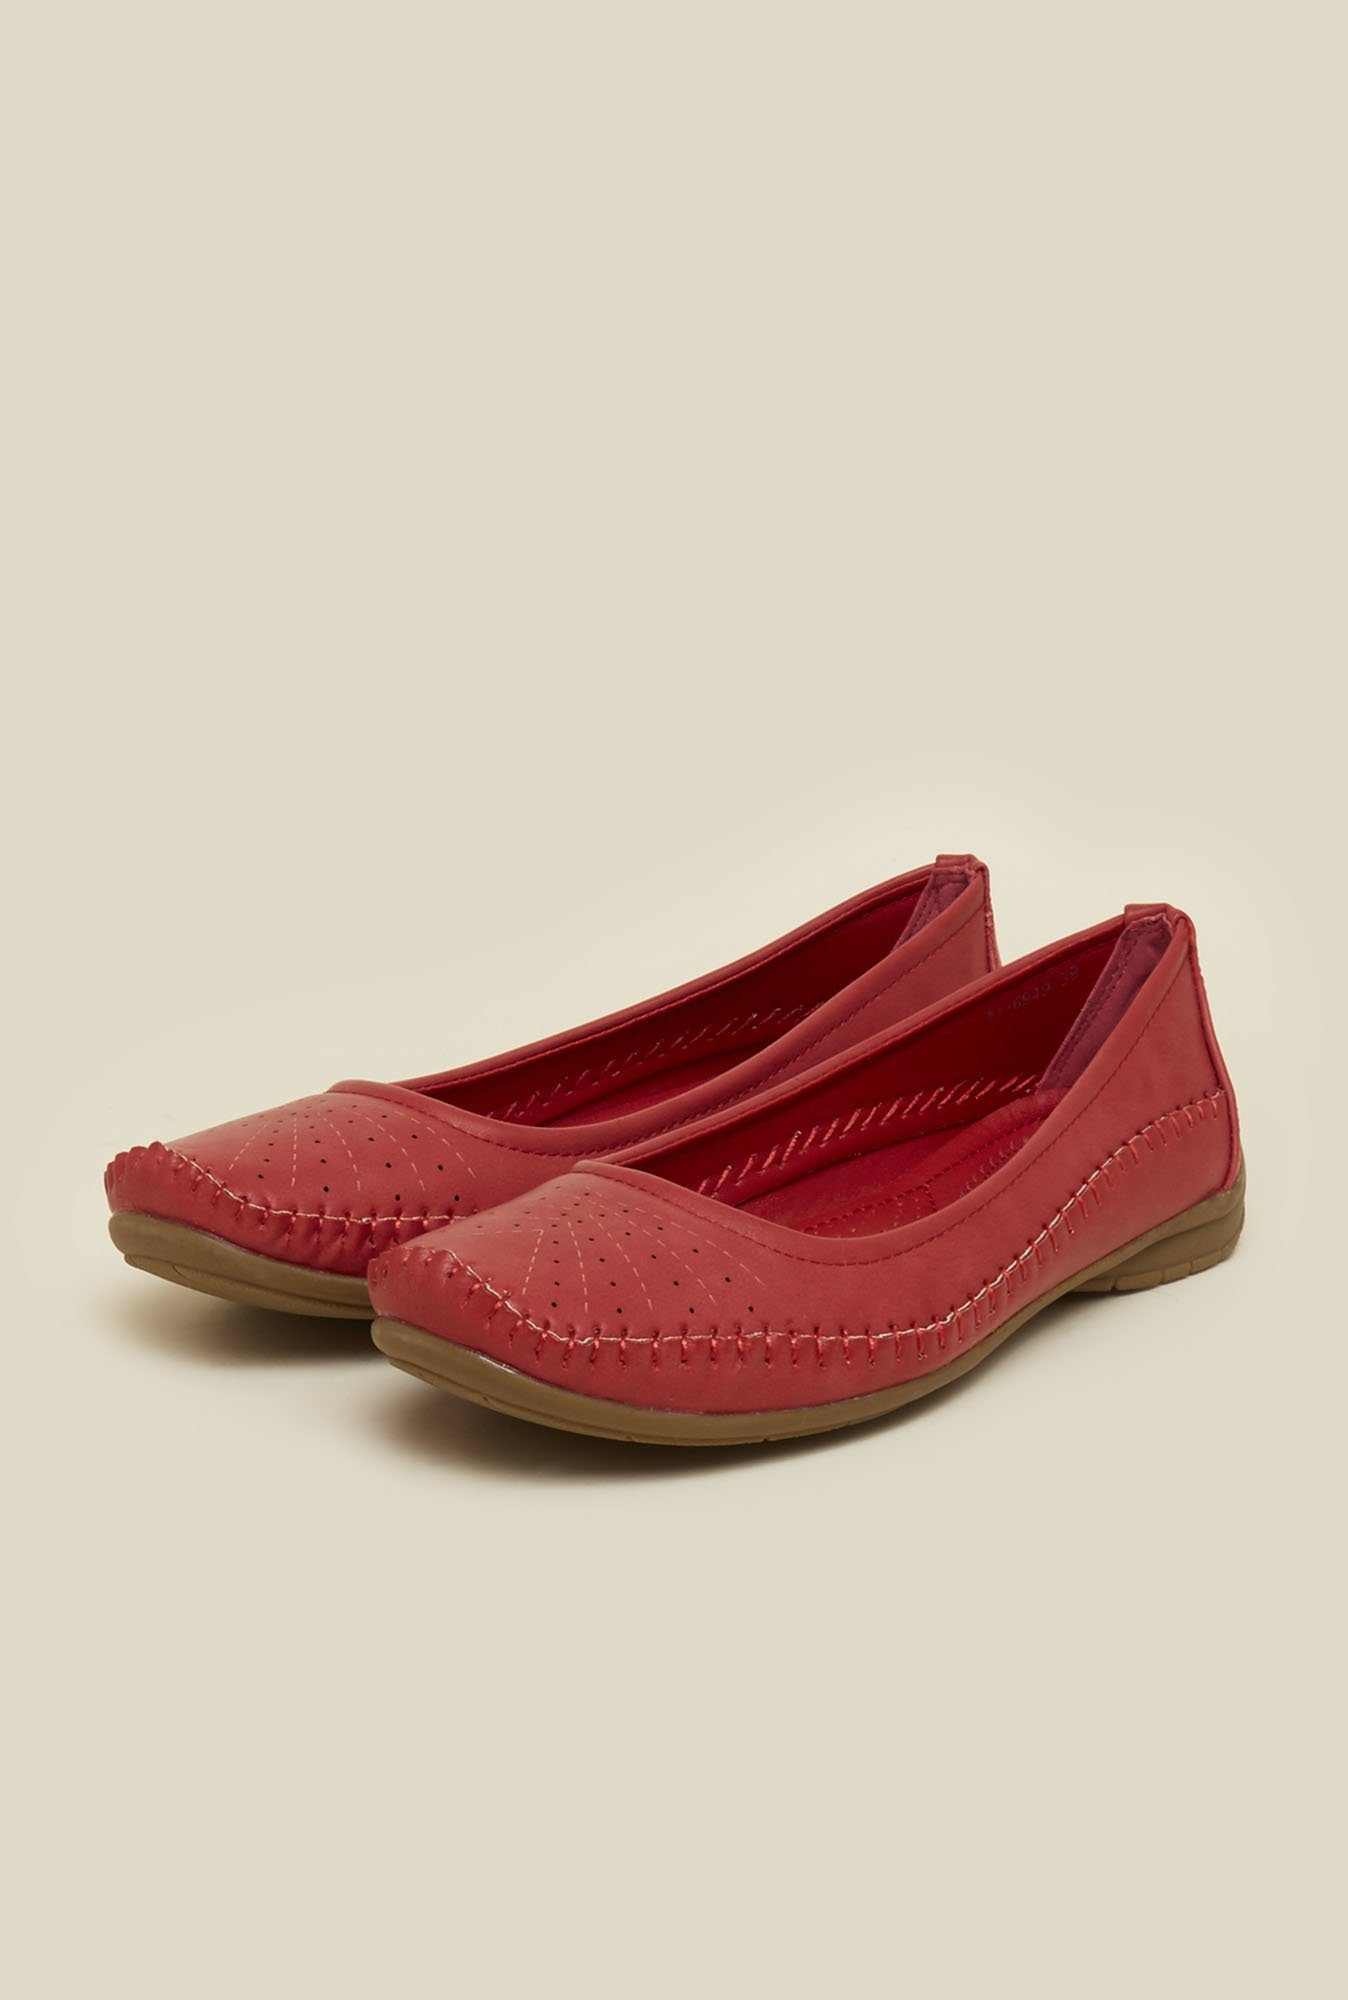 Mochi Red Ballet Flat Shoes